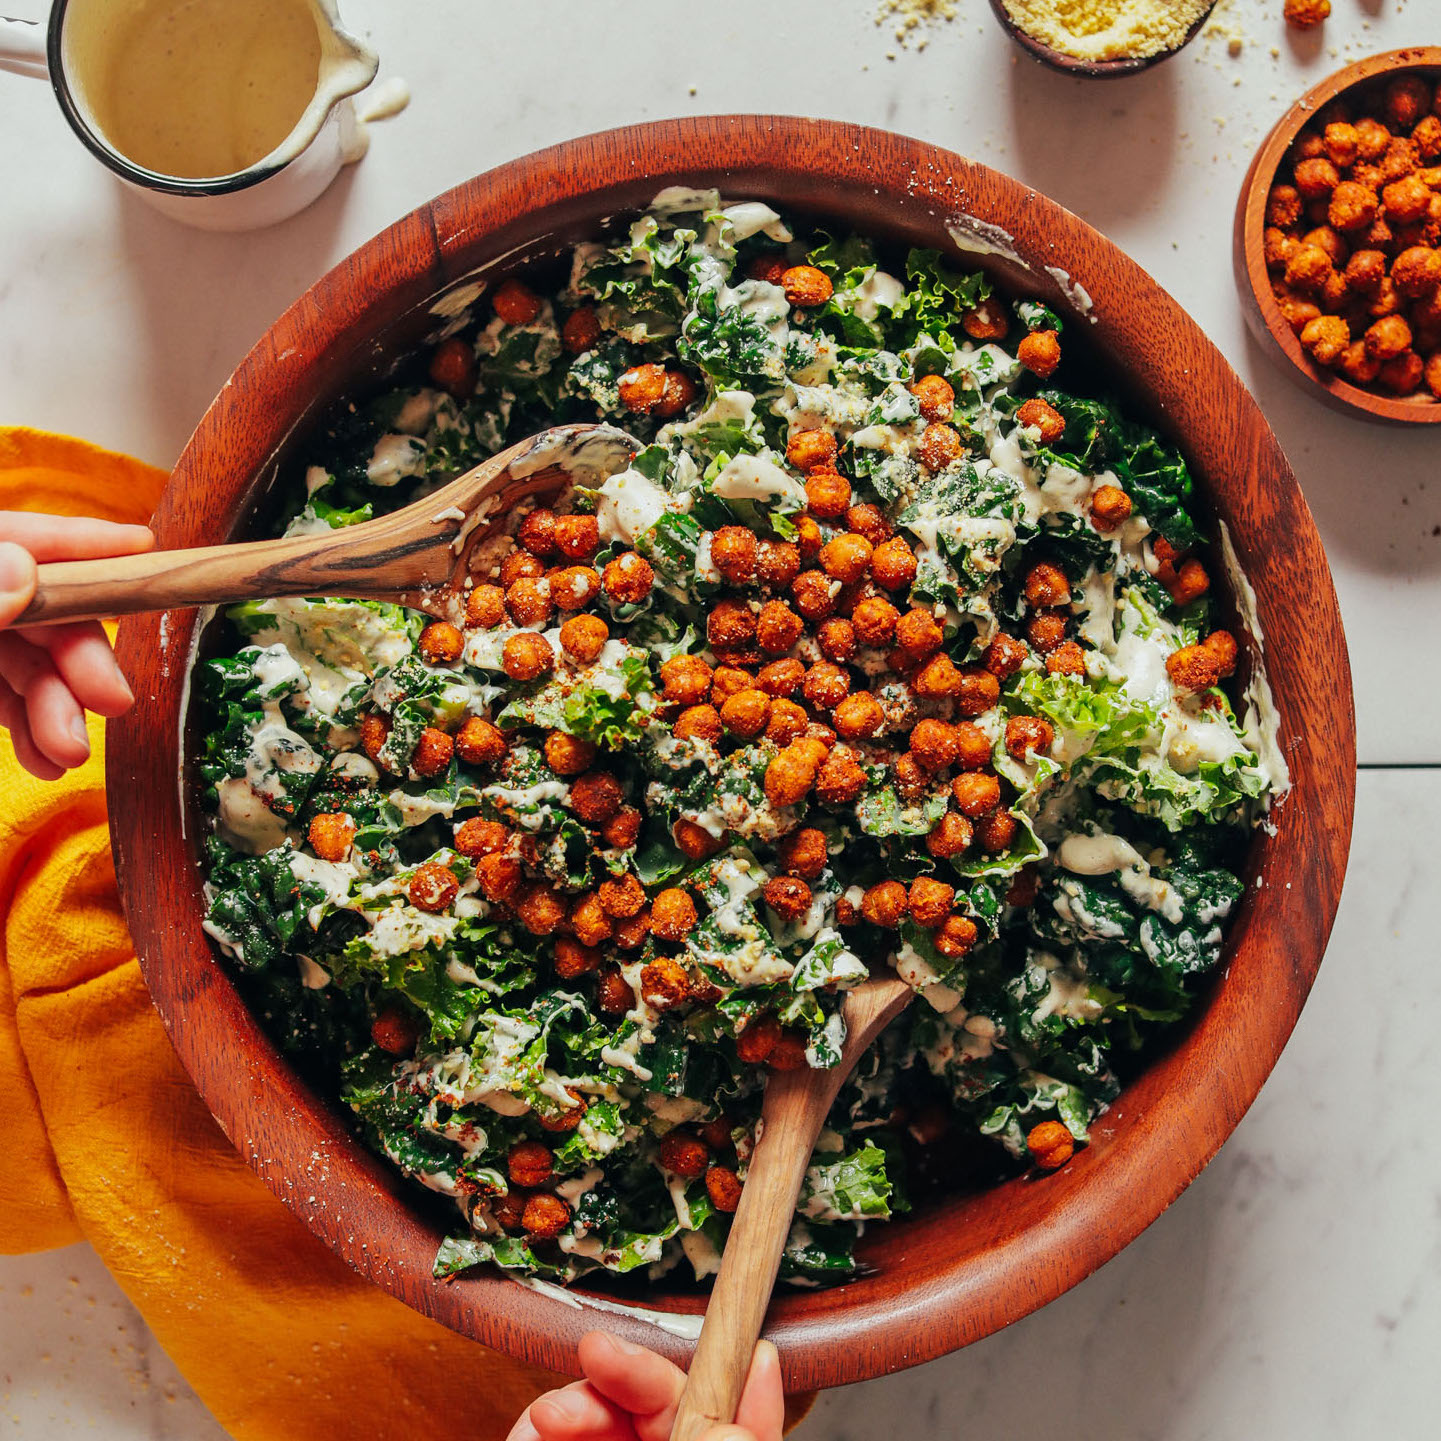 Using salad tongs to pick up a serving of our delicious Kale Caesar Salad with Crispy Chickpeas